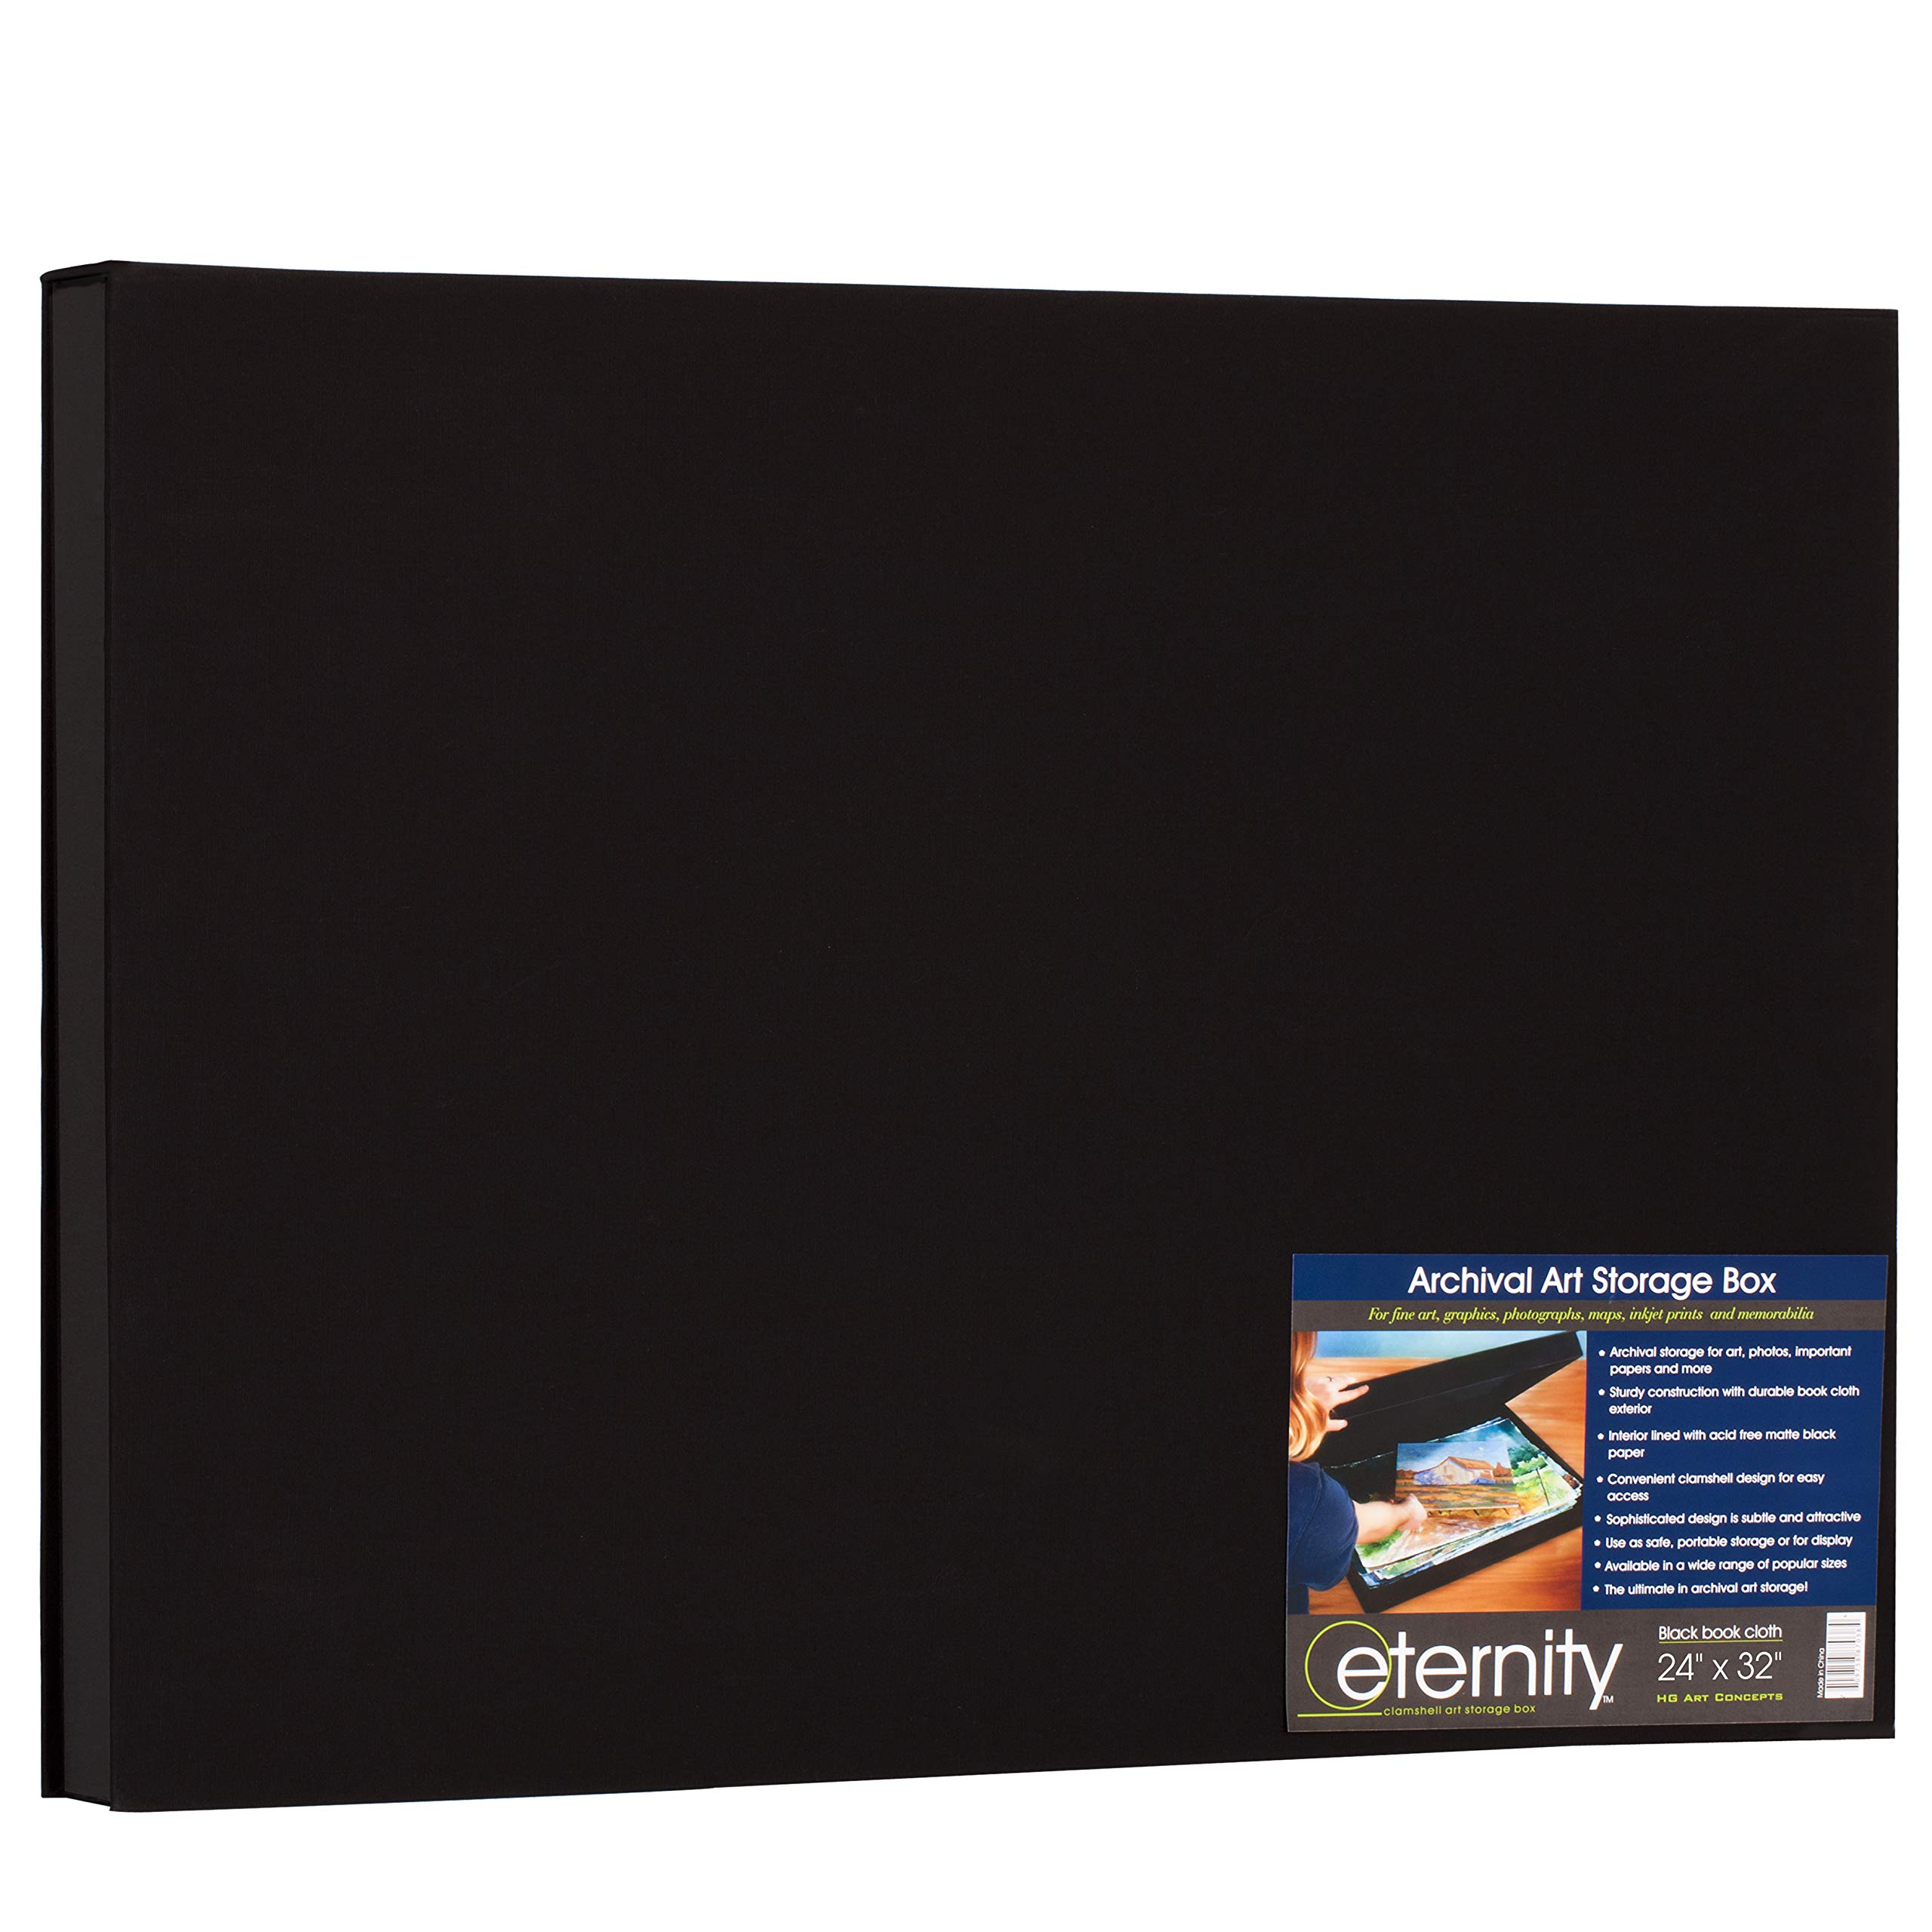 HG Concepts Art Photo Storage Box Eternity Archival Clamshell Box for Storing Artwork, Photos & Documents Deluxe Acid-Free Sturdy & Lined with Archival Paper - [Black - 24'' x 32'']